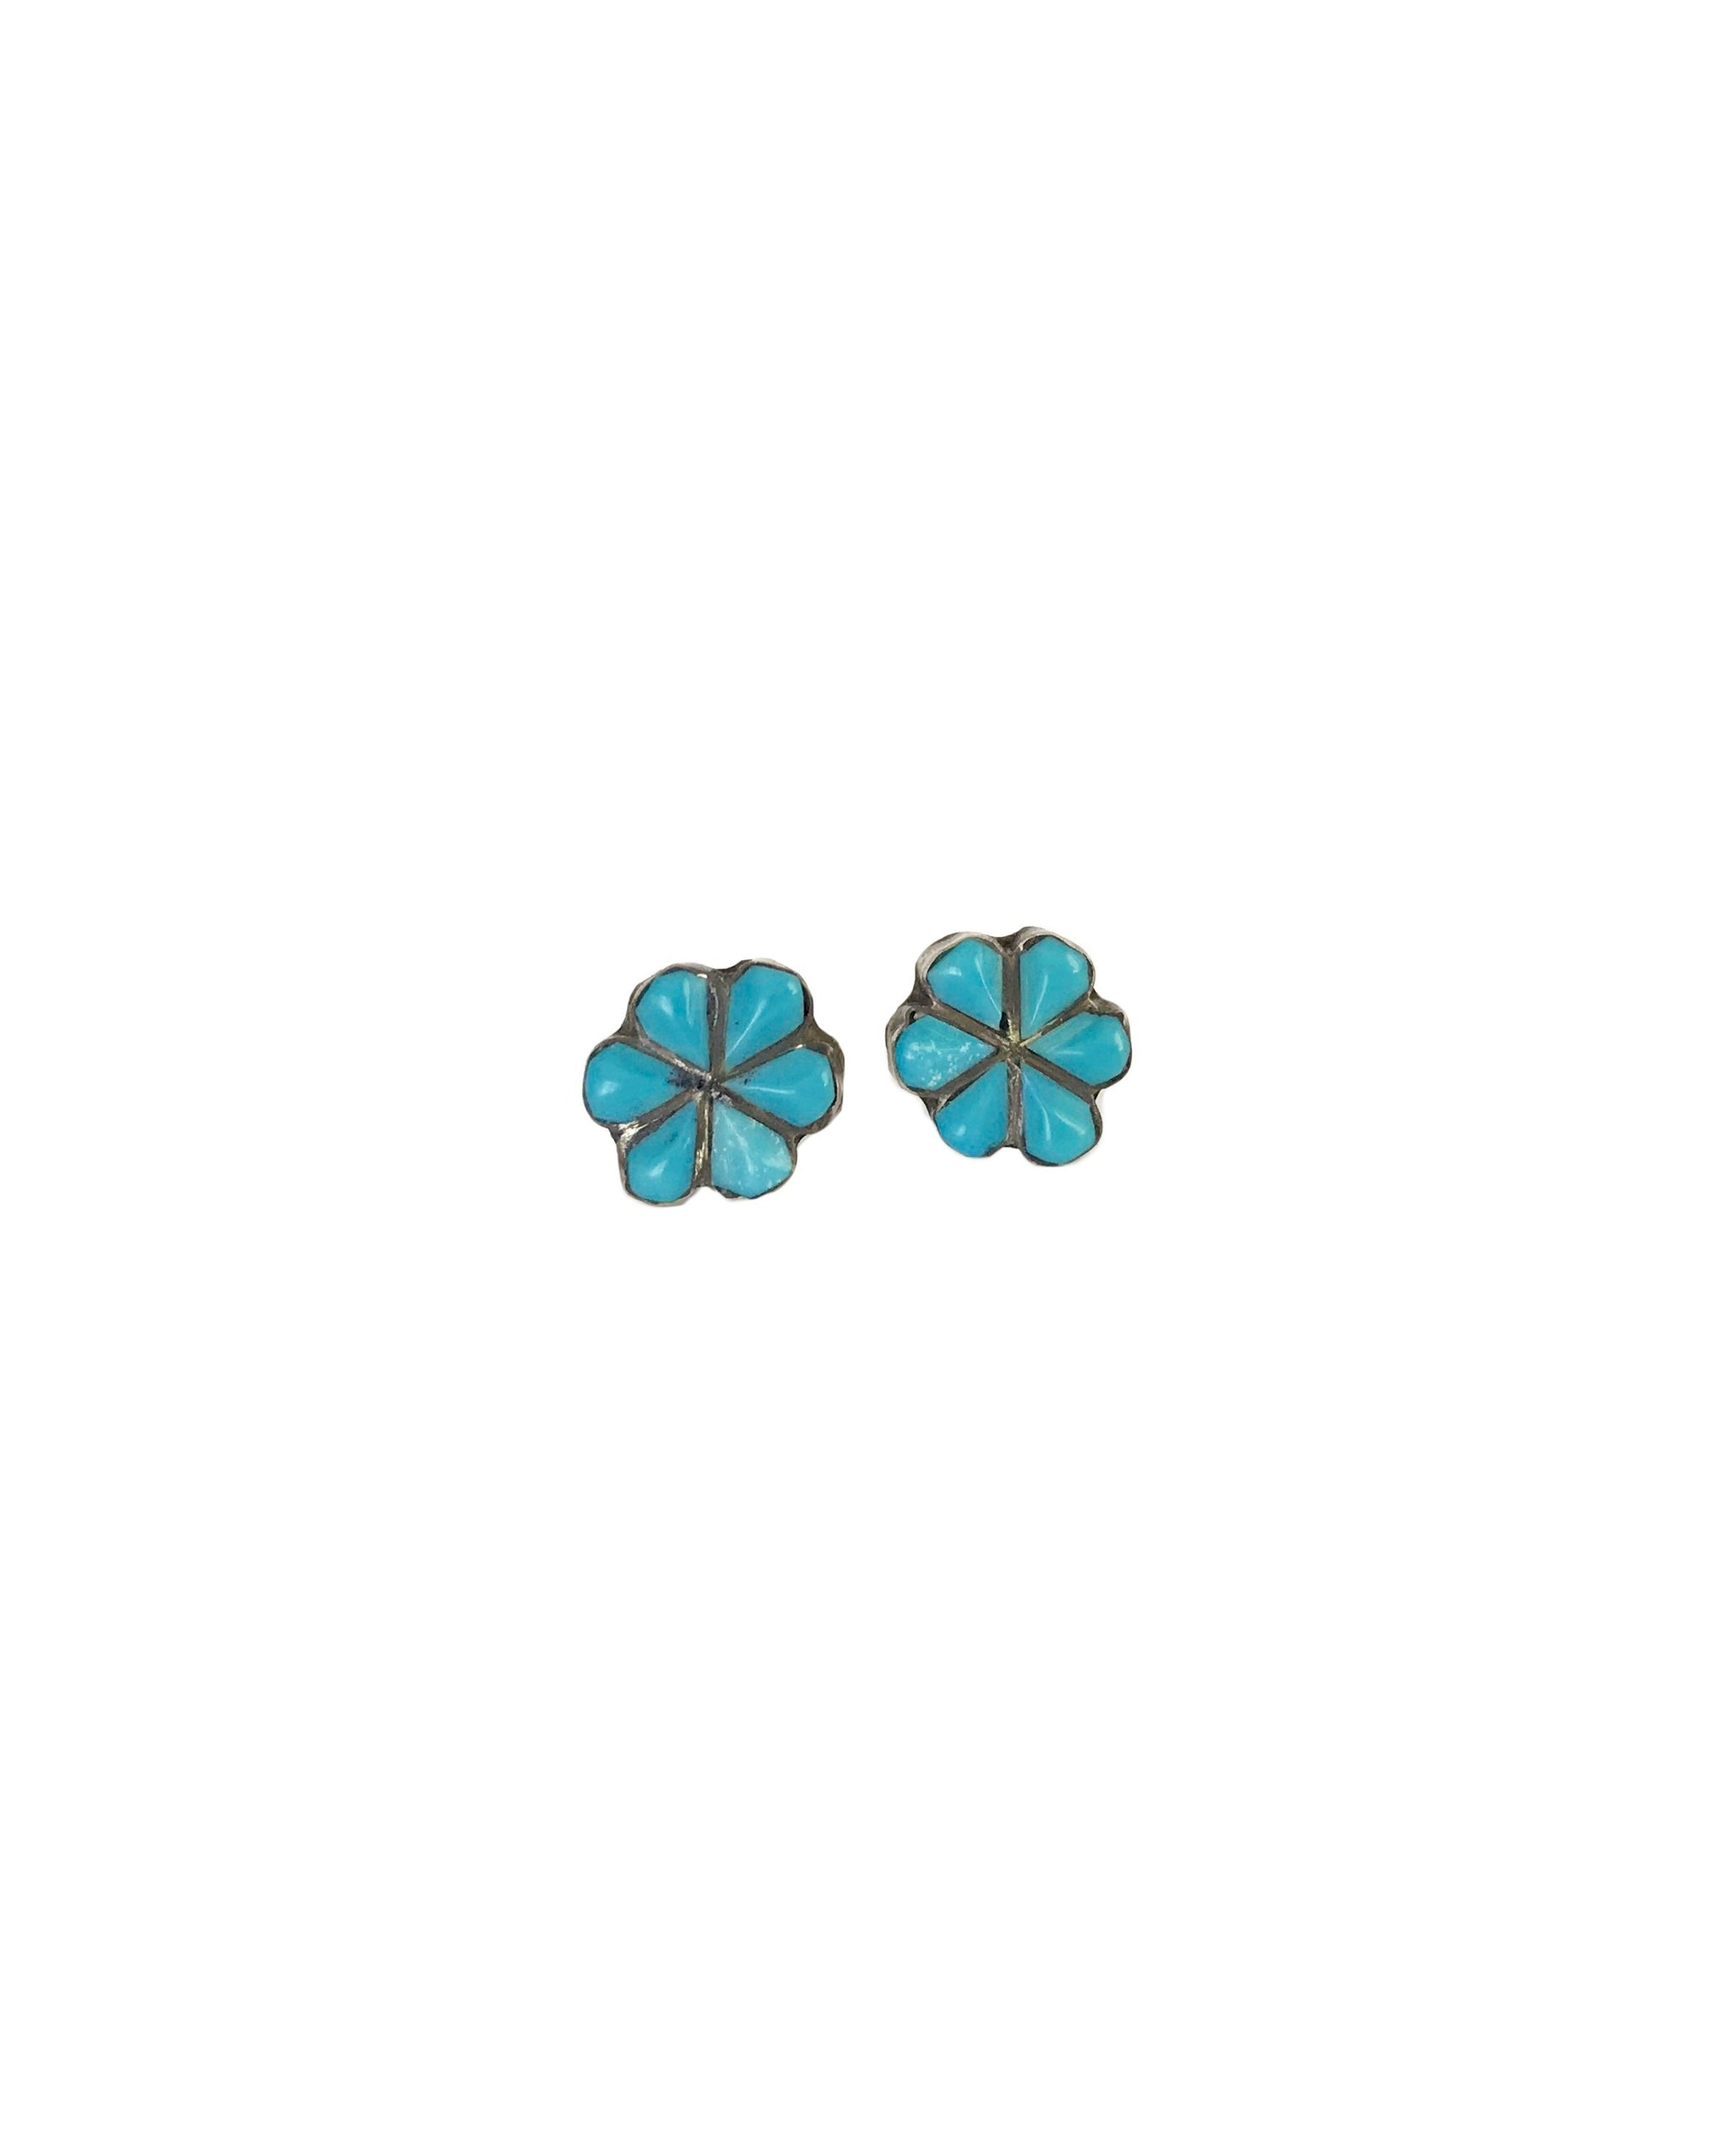 VINTAGE FLORA STUDS - TURQUOISE + TOBACCO